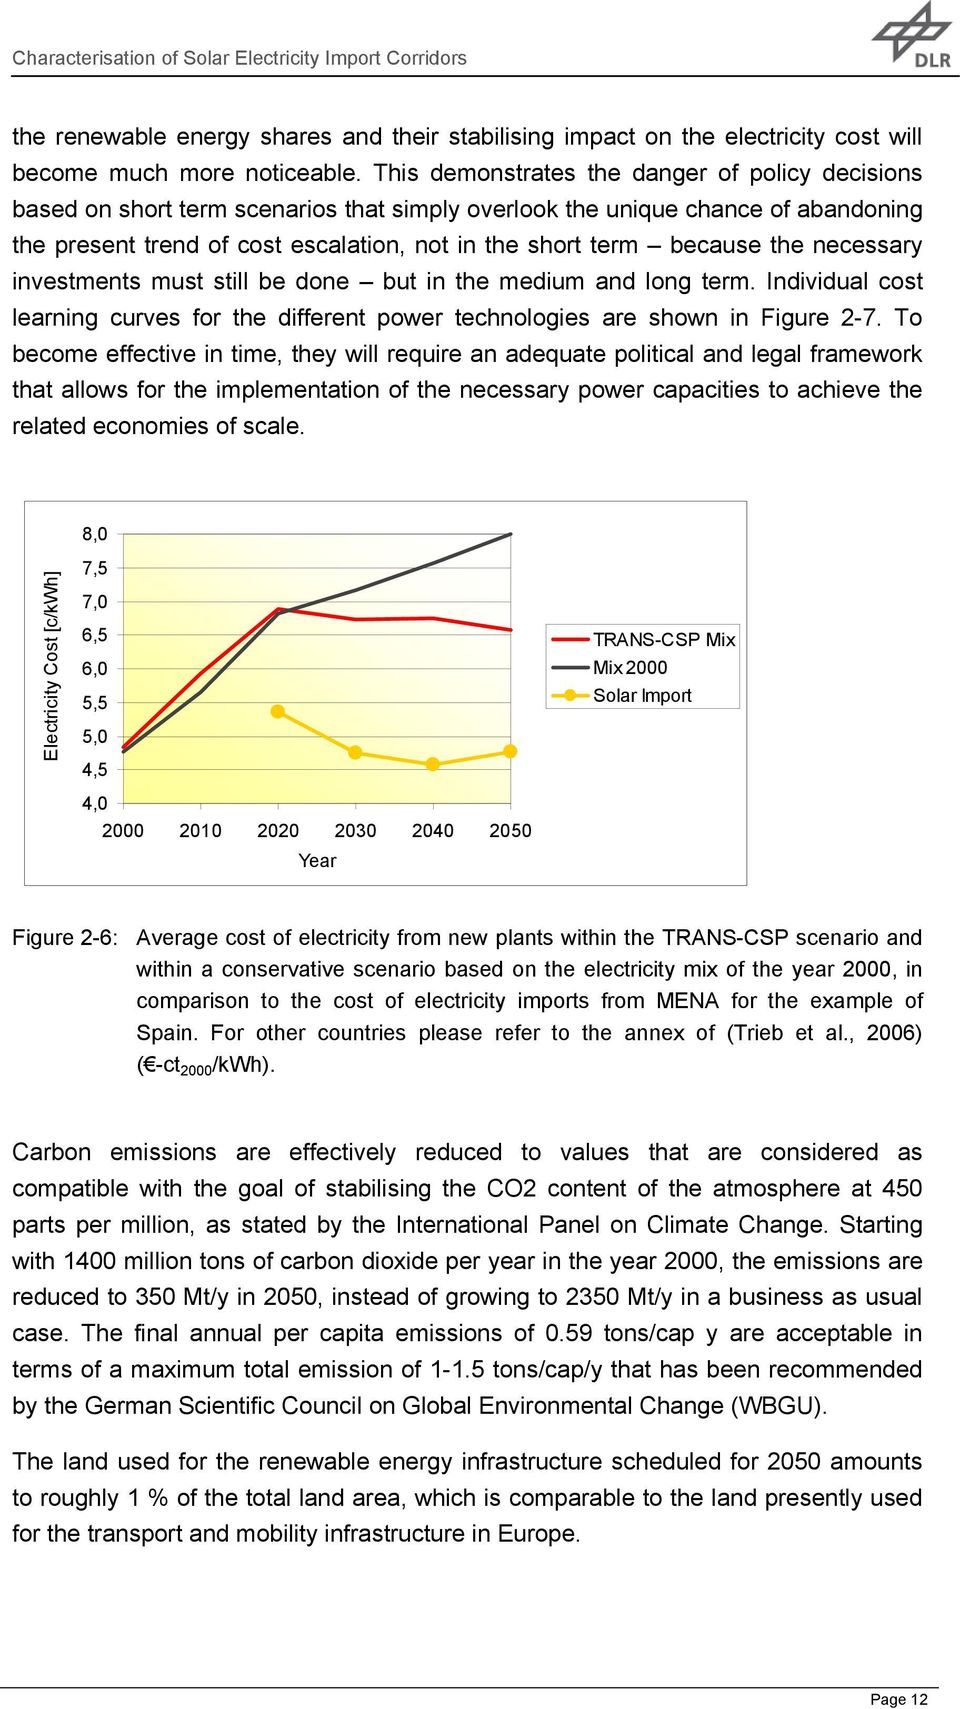 the necessary investments must still be done but in the medium and long term. Individual cost learning curves for the different power technologies are shown in Figure 2-7.